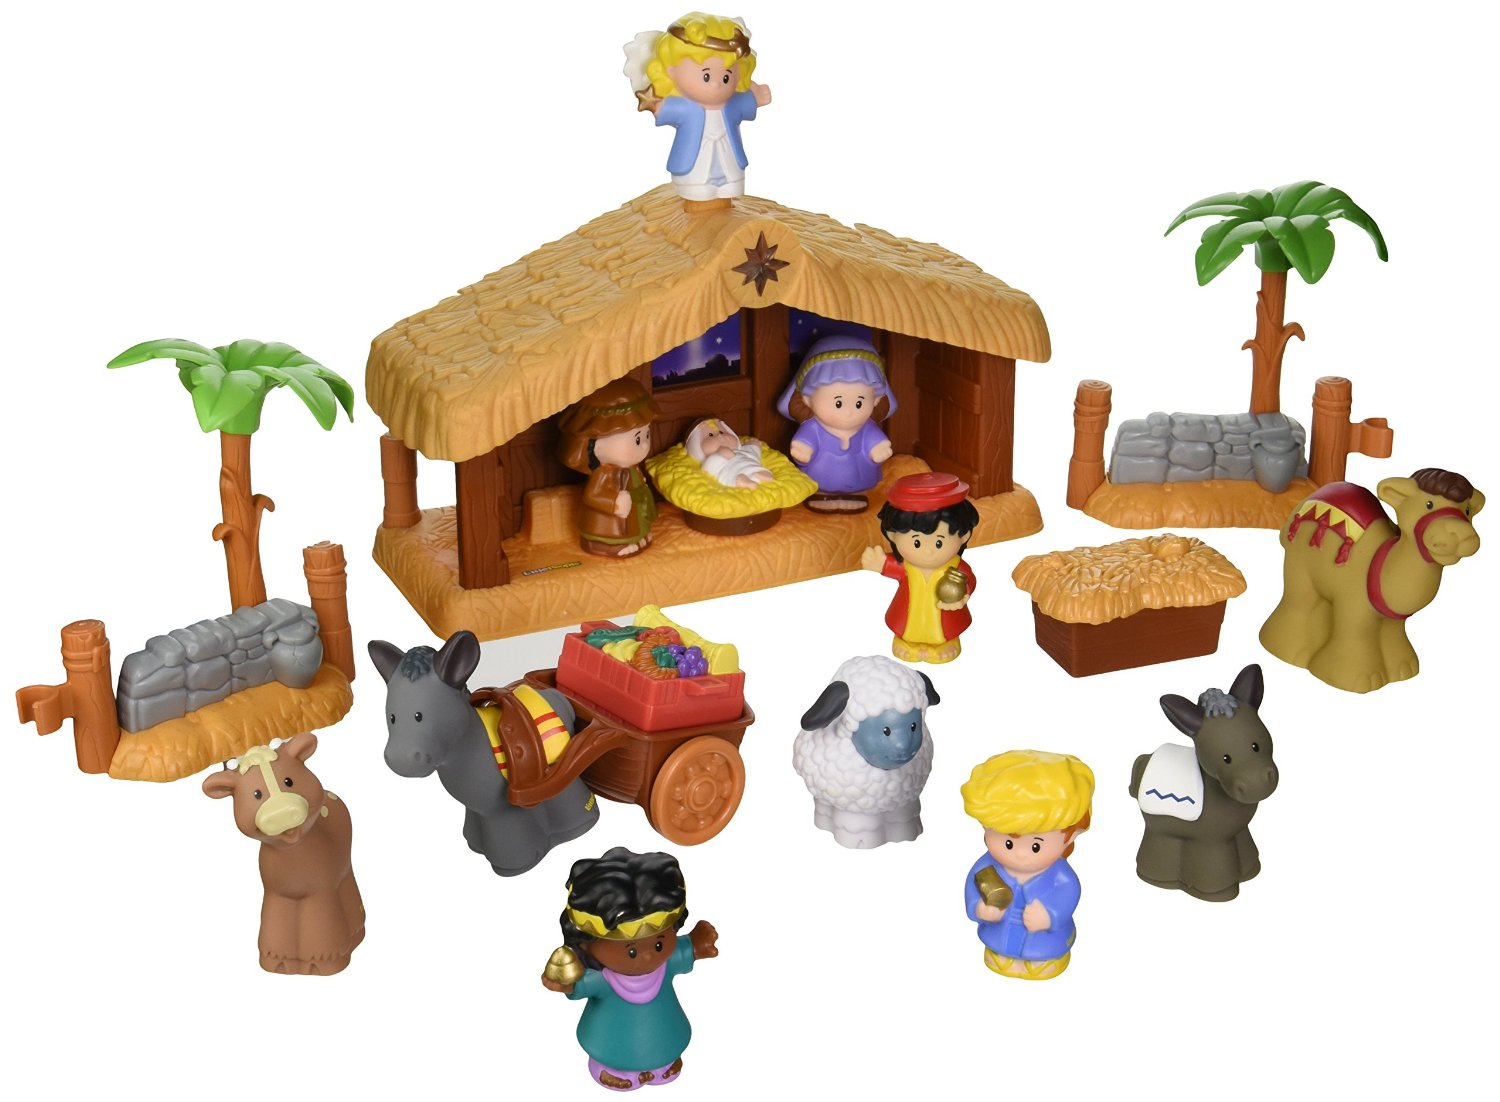 Get the Fisher-Price Little People Nativity Set for as low as $19.99 shipped right now!